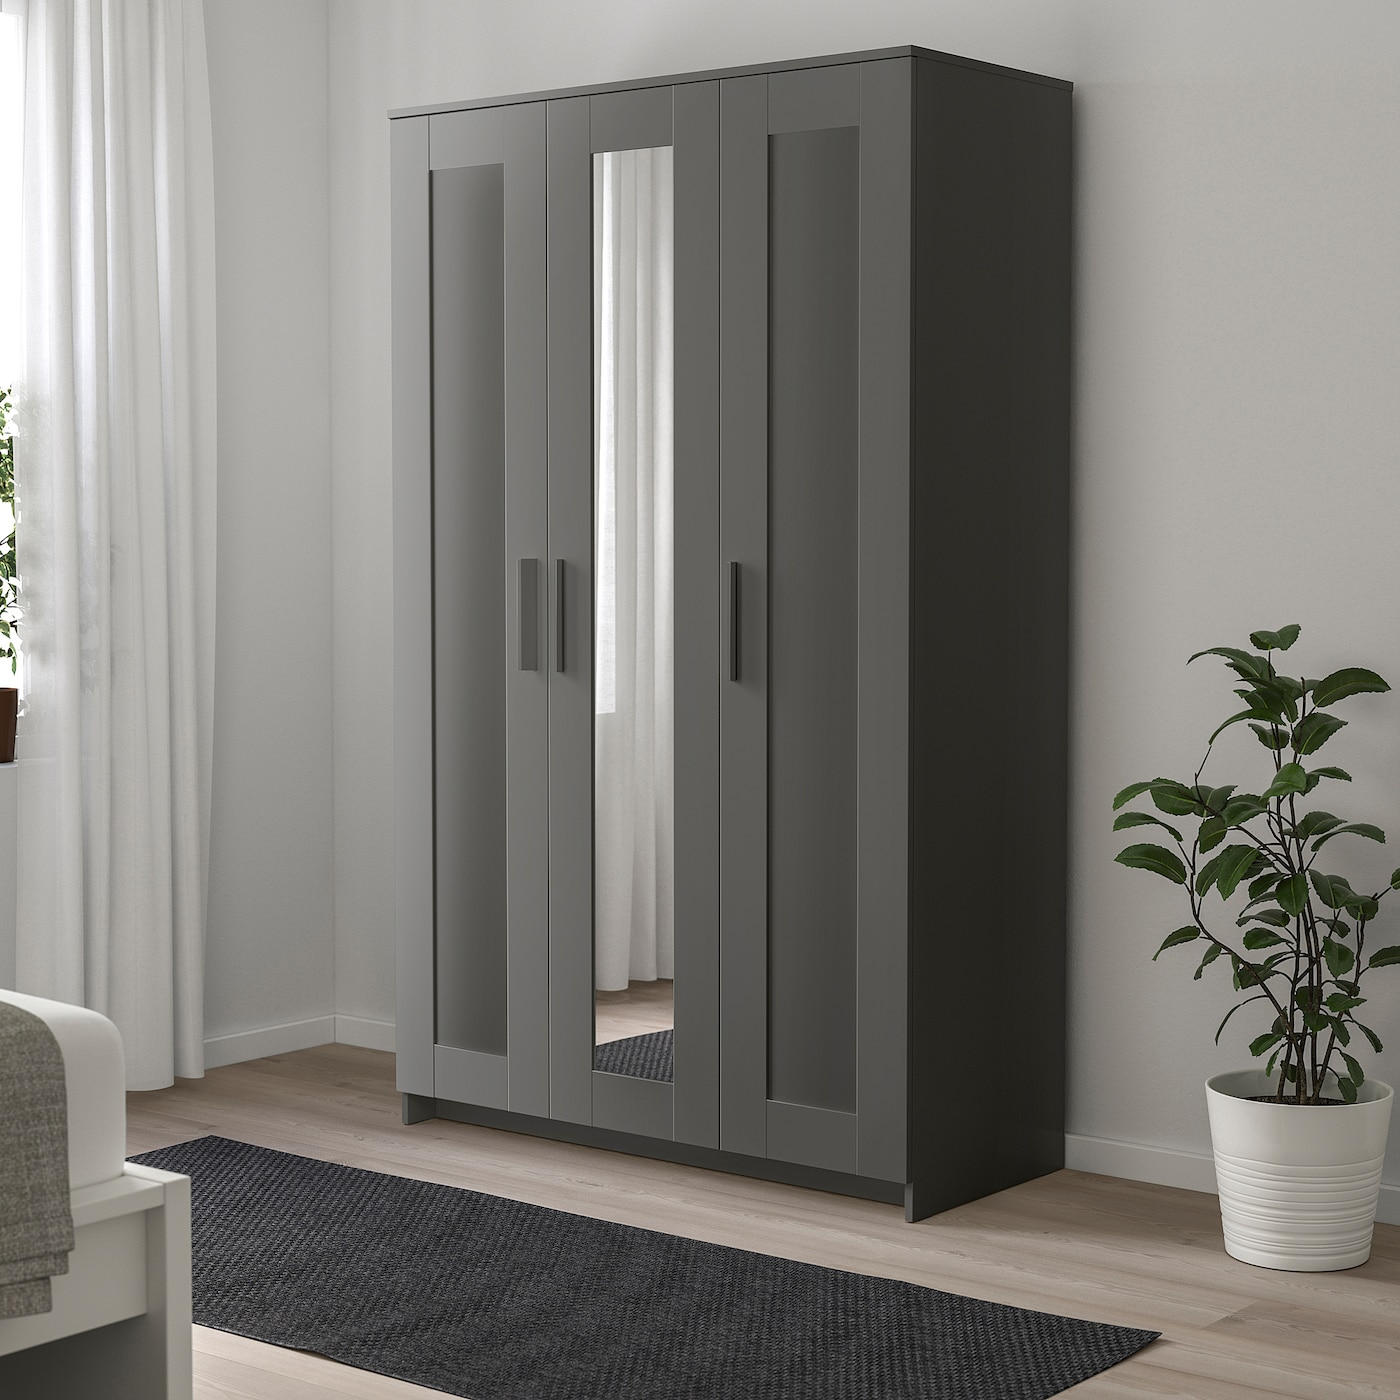 BRIMNES Wardrobe with 3 doors - gray - IKEA